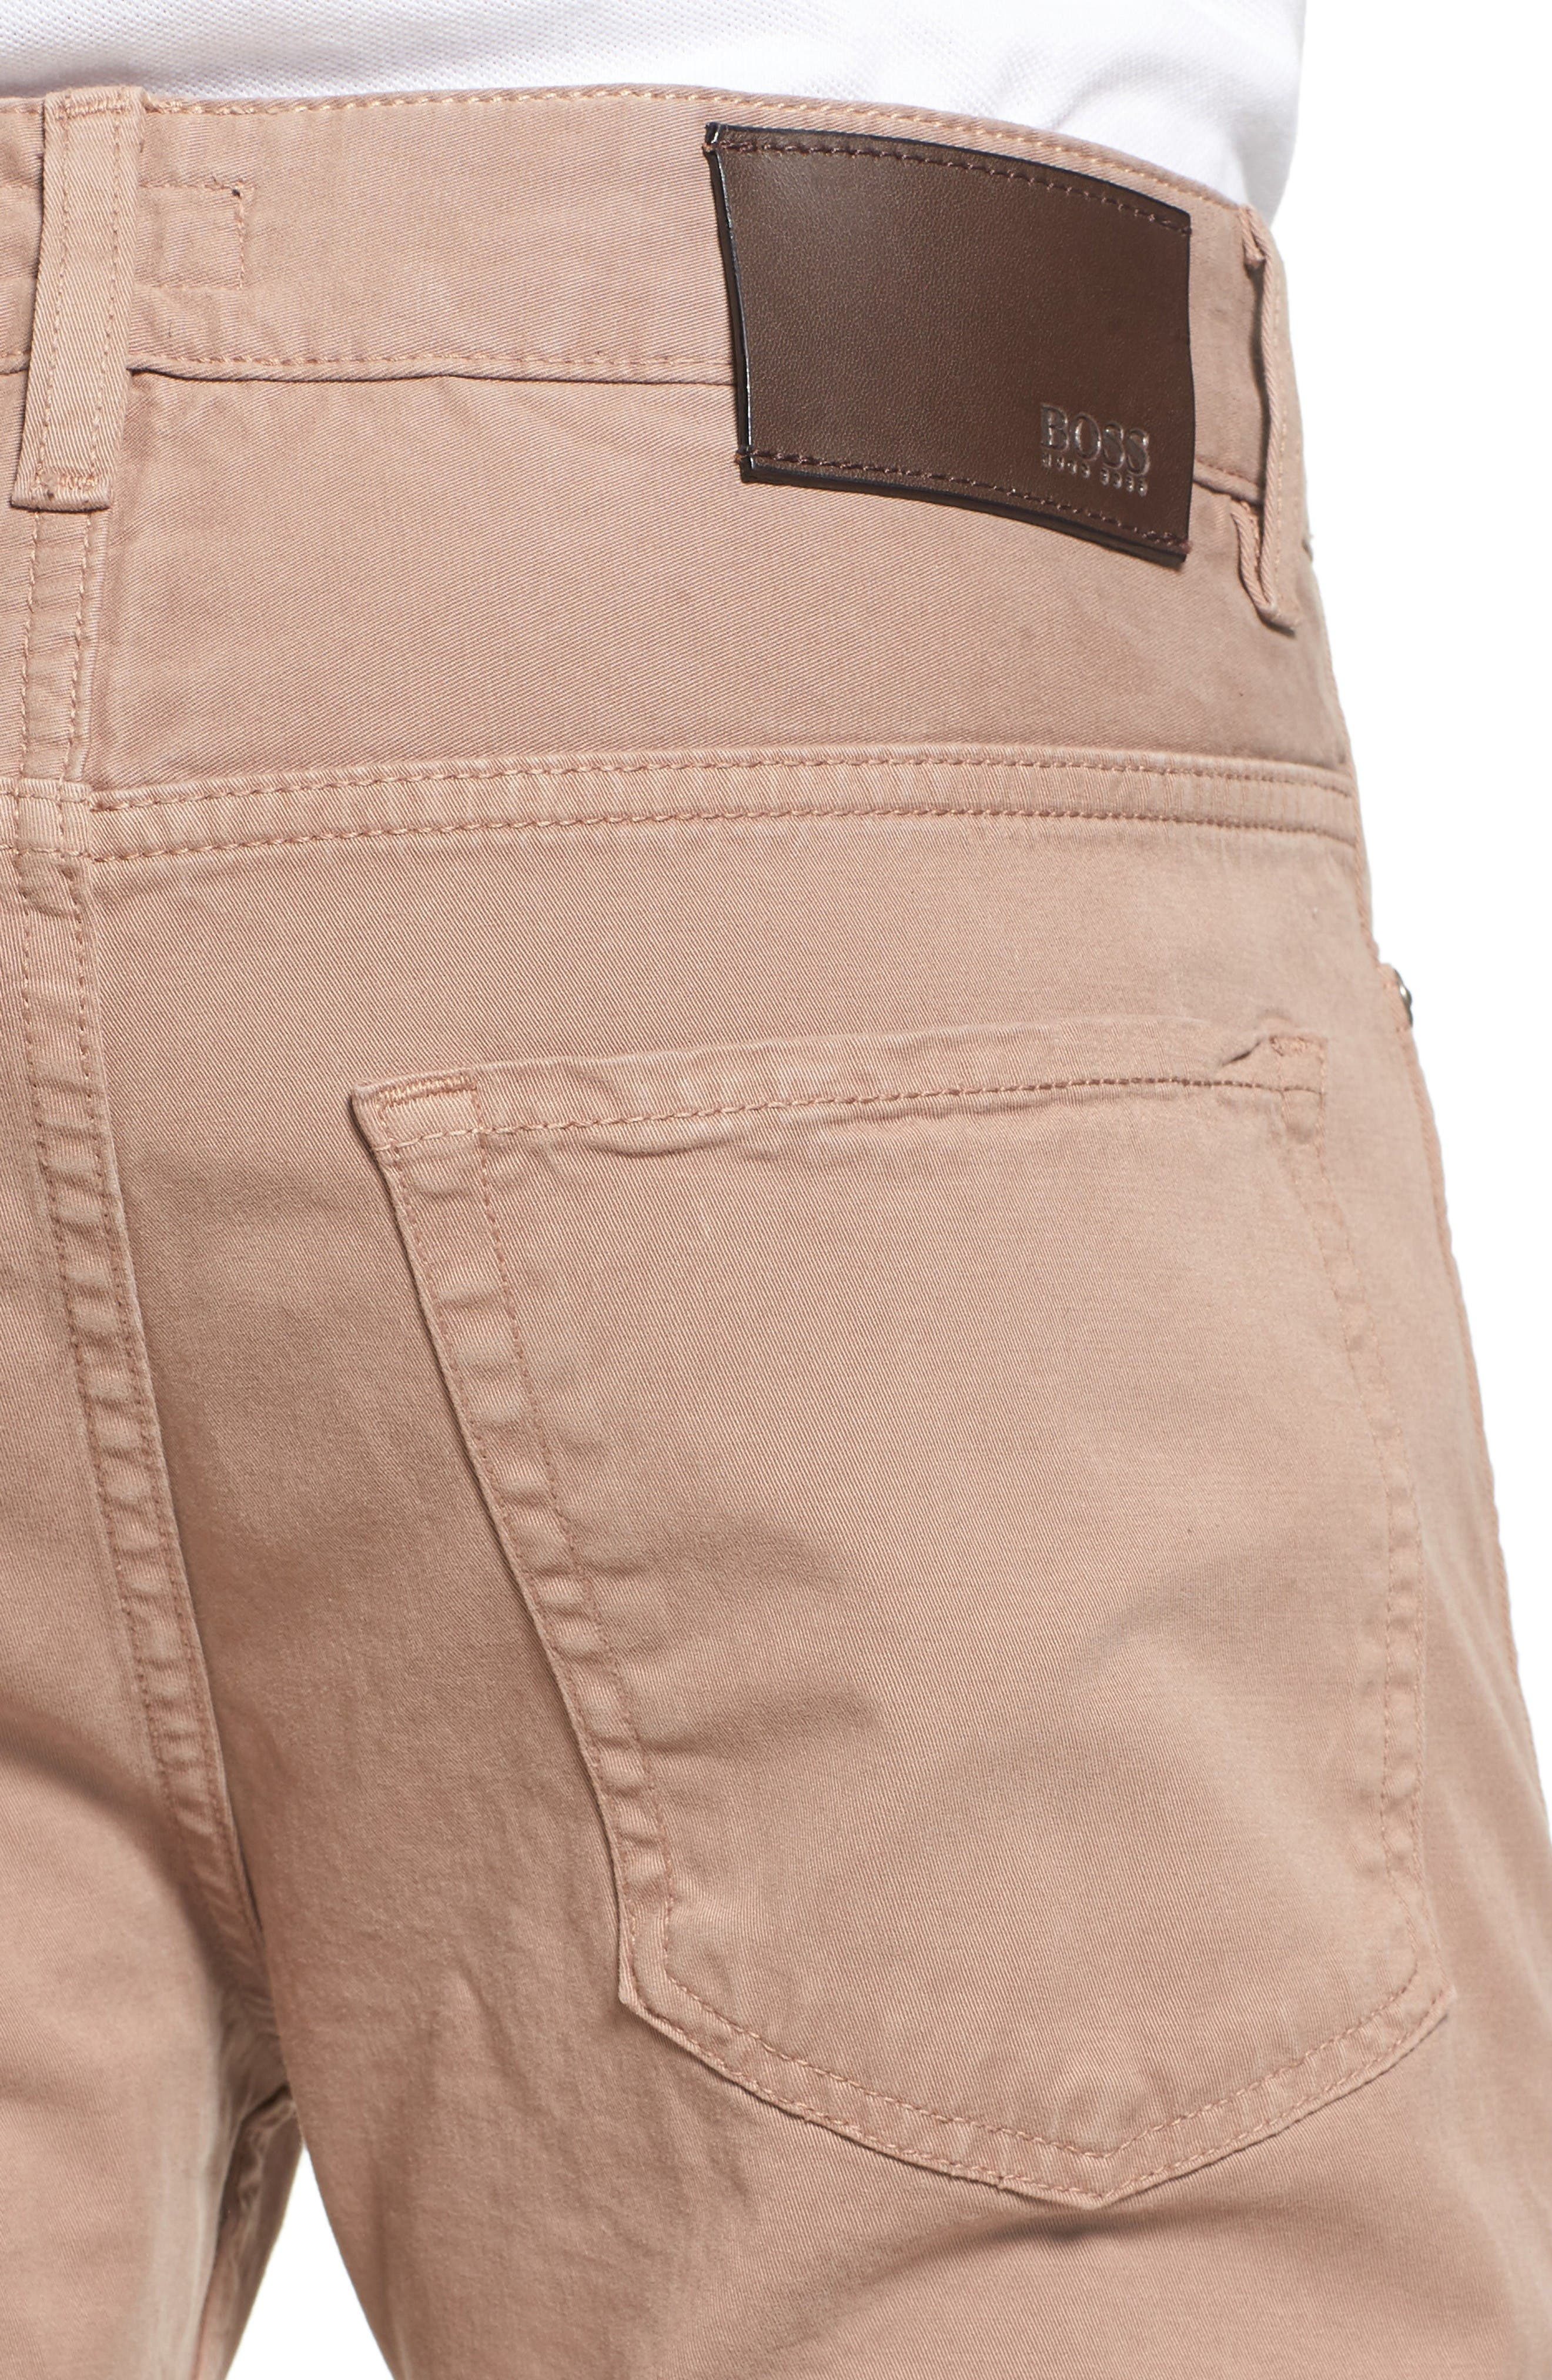 Delaware Slim Fit Stretch Cotton Pants,                             Alternate thumbnail 4, color,                             Khaki